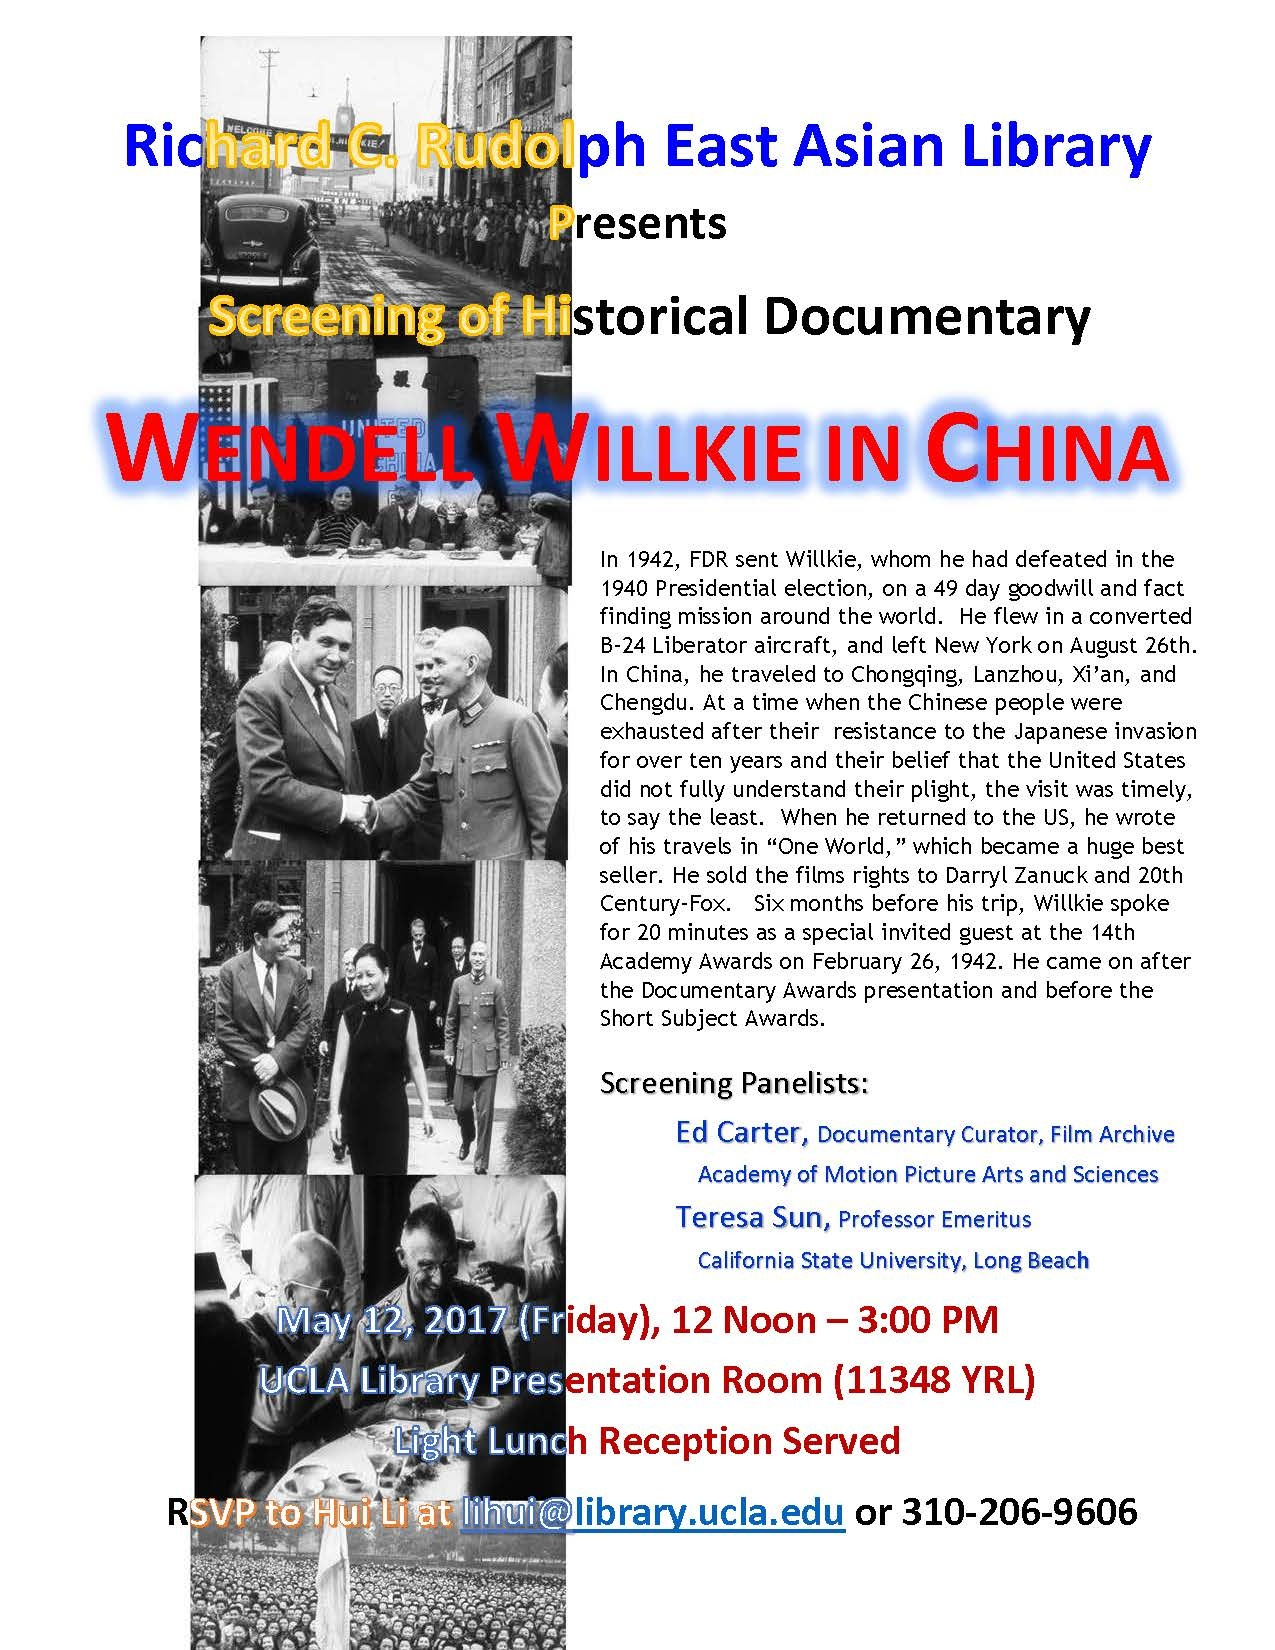 Willkie in China flyer with black and white photos of Willkie and event details